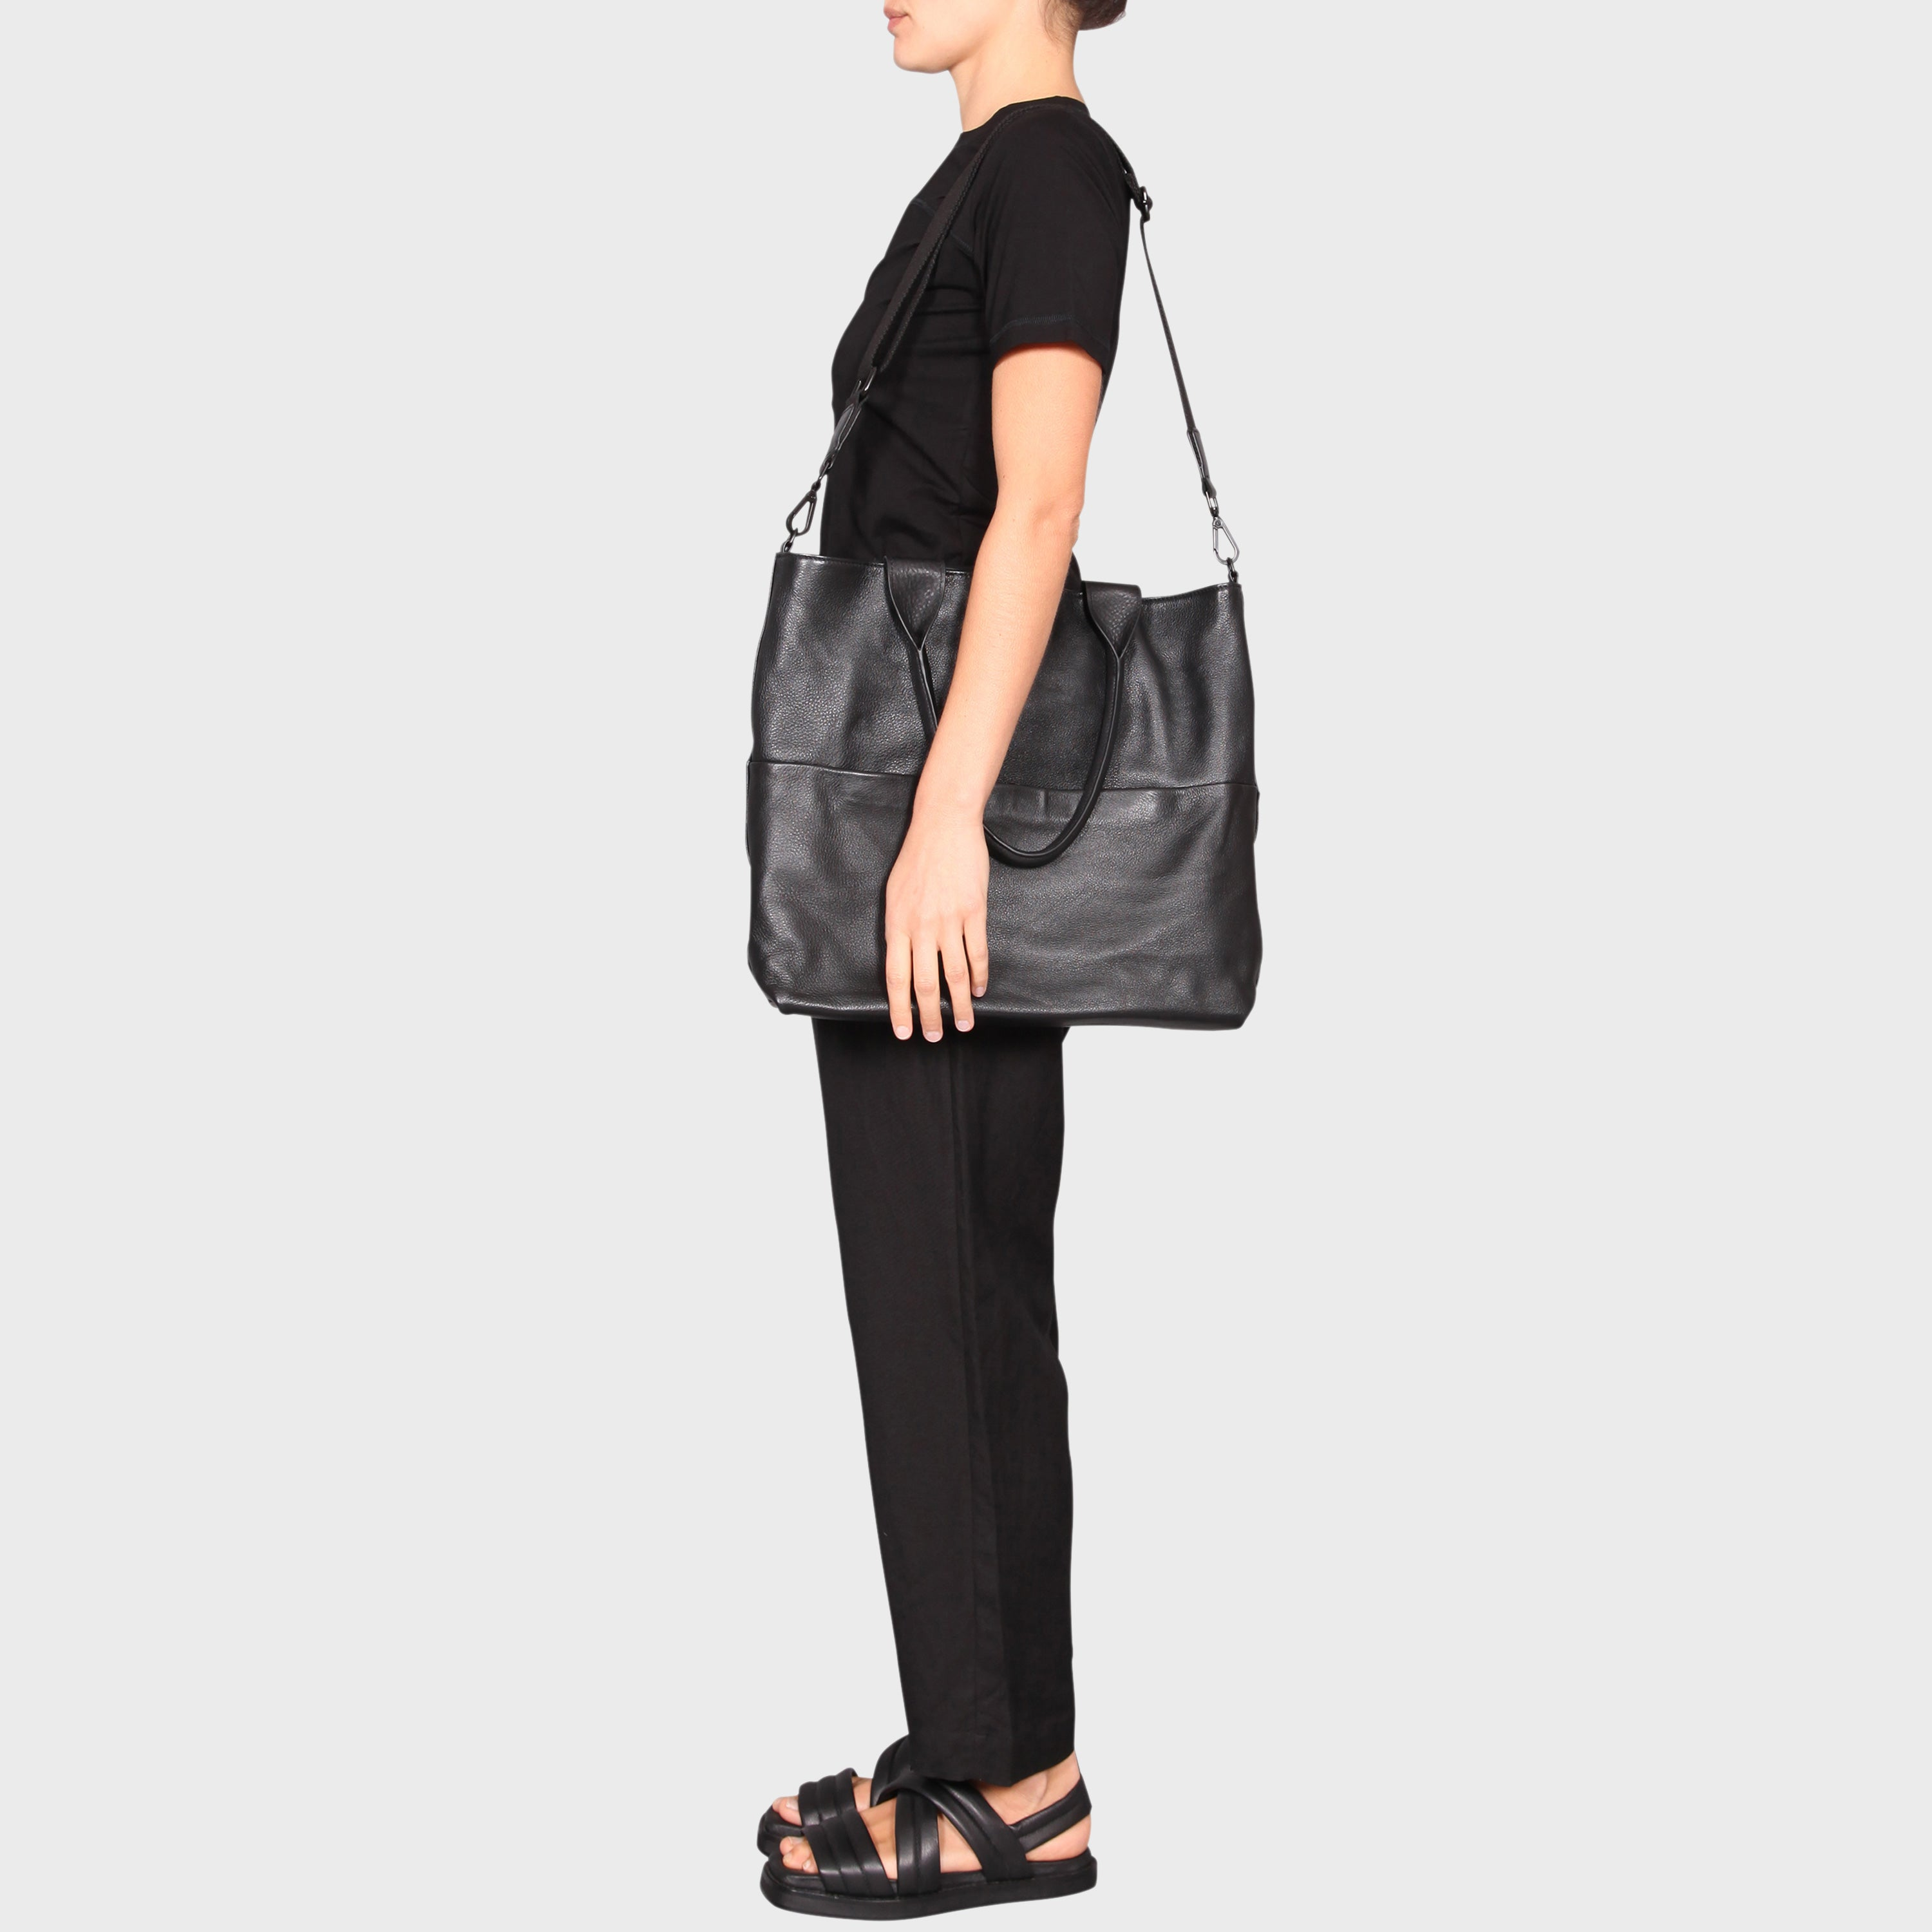 LOU BAG / BLACK